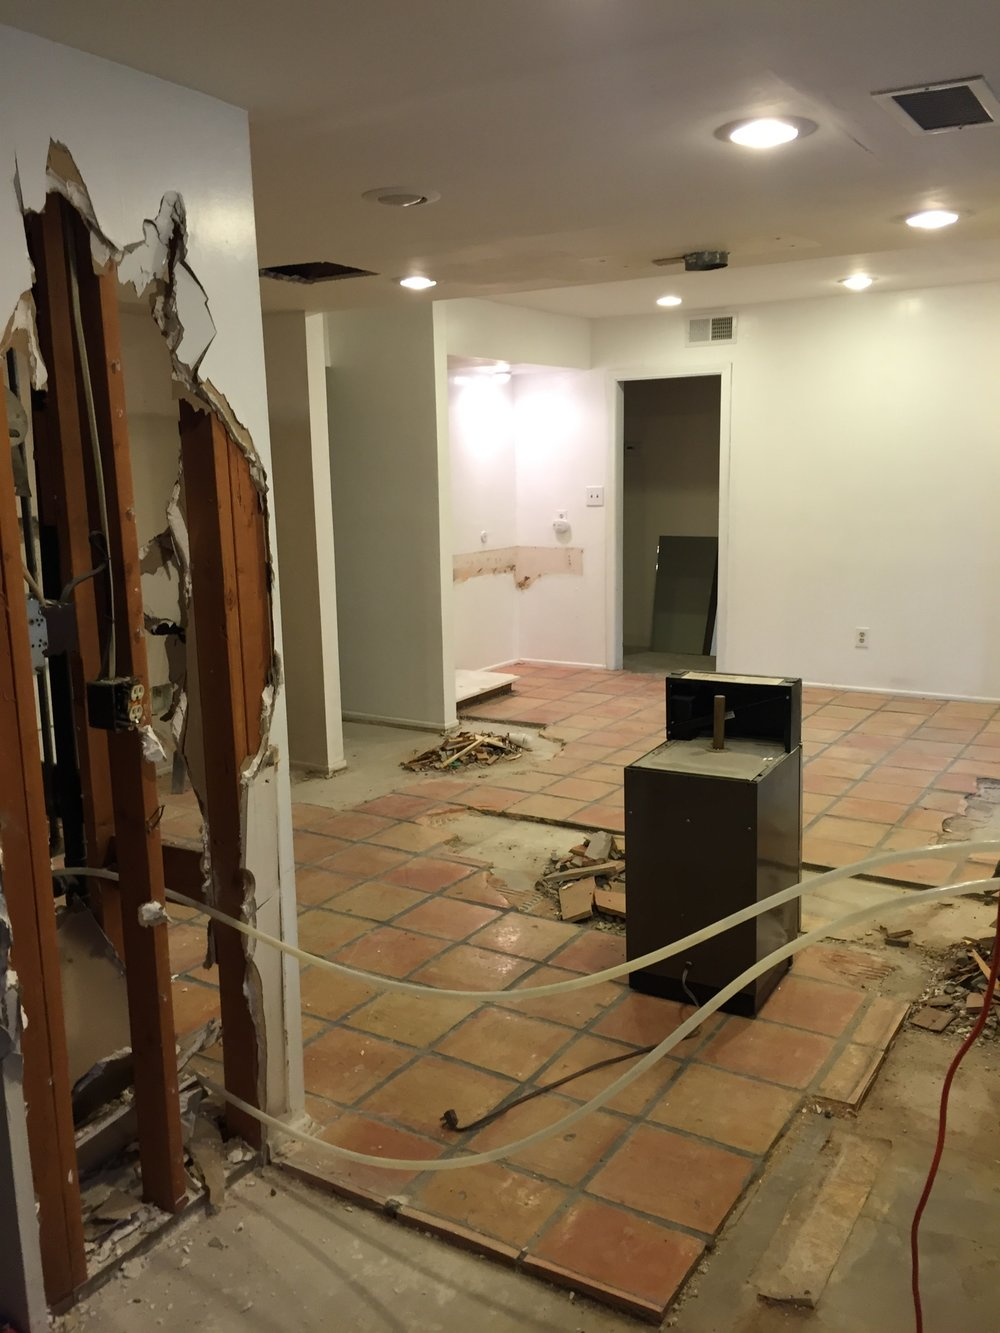 The entire kitchen is coming out including the wall between the kitchen and the dining/living areas. We are also tearing out all of the Spanish pavers. We LOVE Spanish pavers just not in this house.